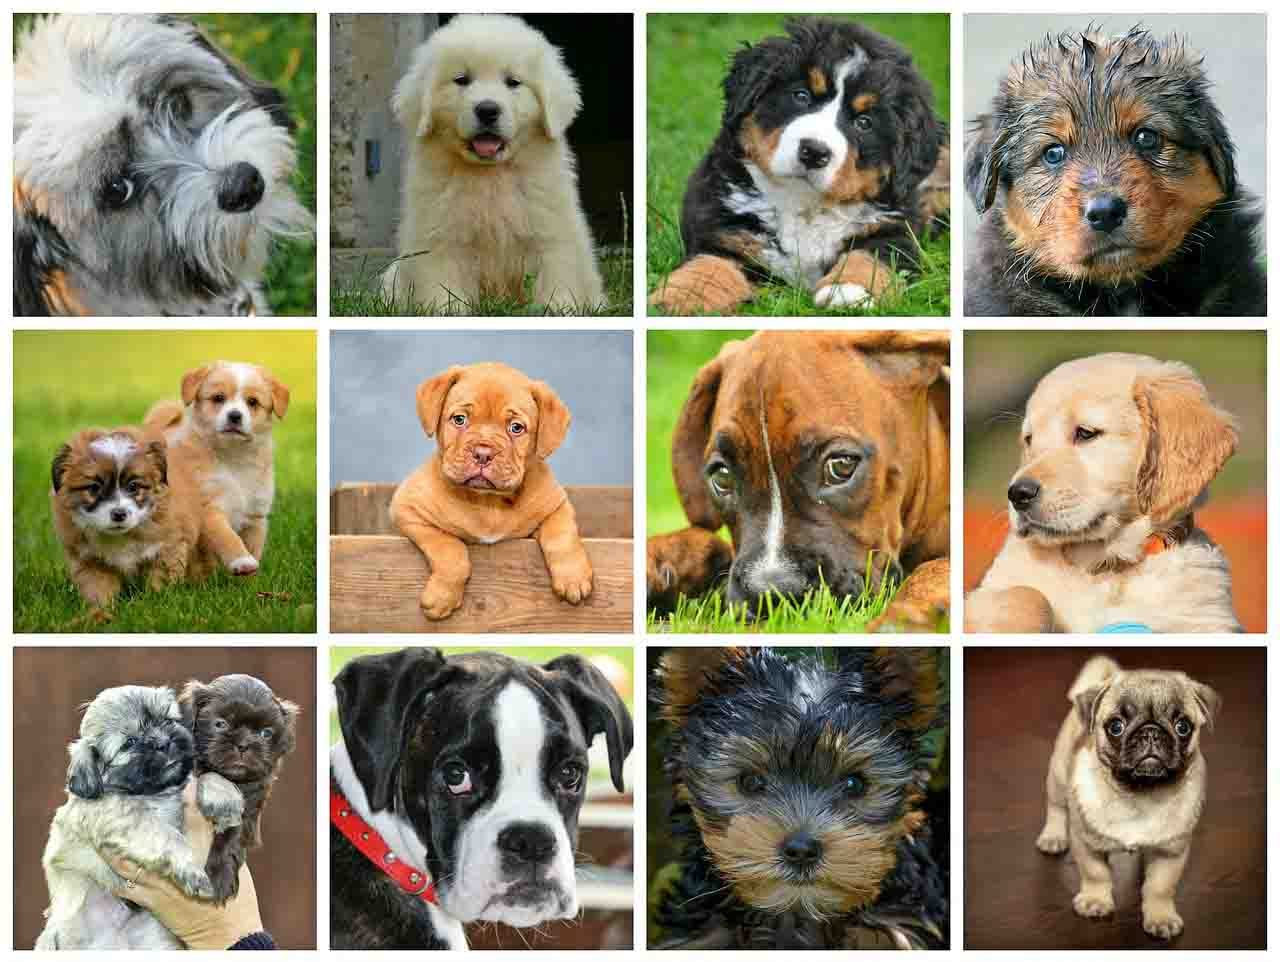 There are less popular dog breeds that can become extinct